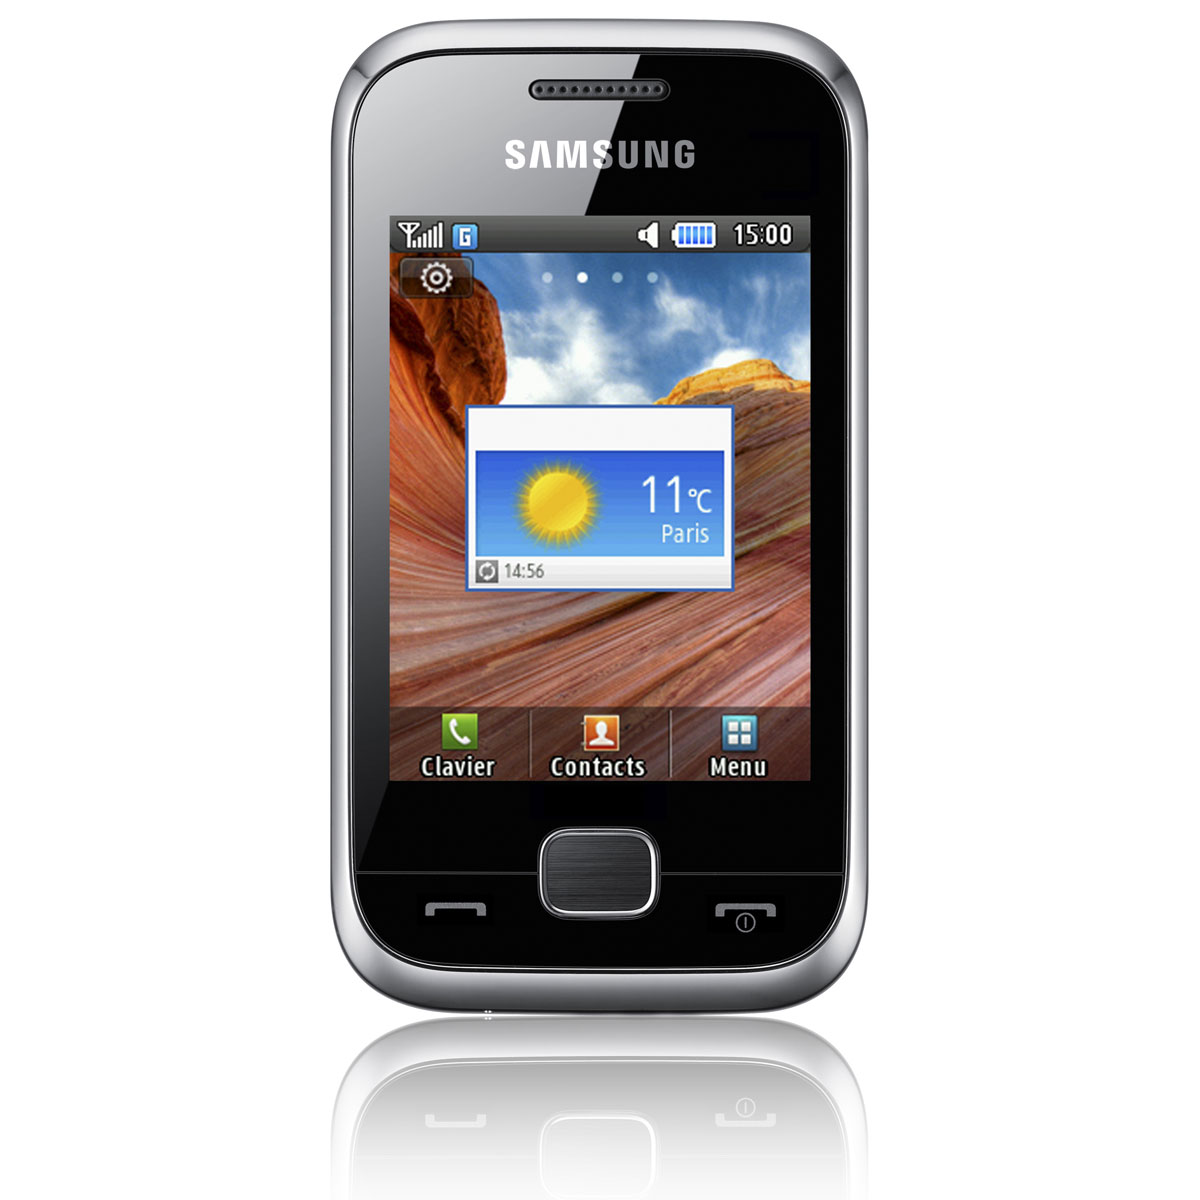 samsung player mini 2 gt c3310 argent mobile smartphone samsung sur. Black Bedroom Furniture Sets. Home Design Ideas